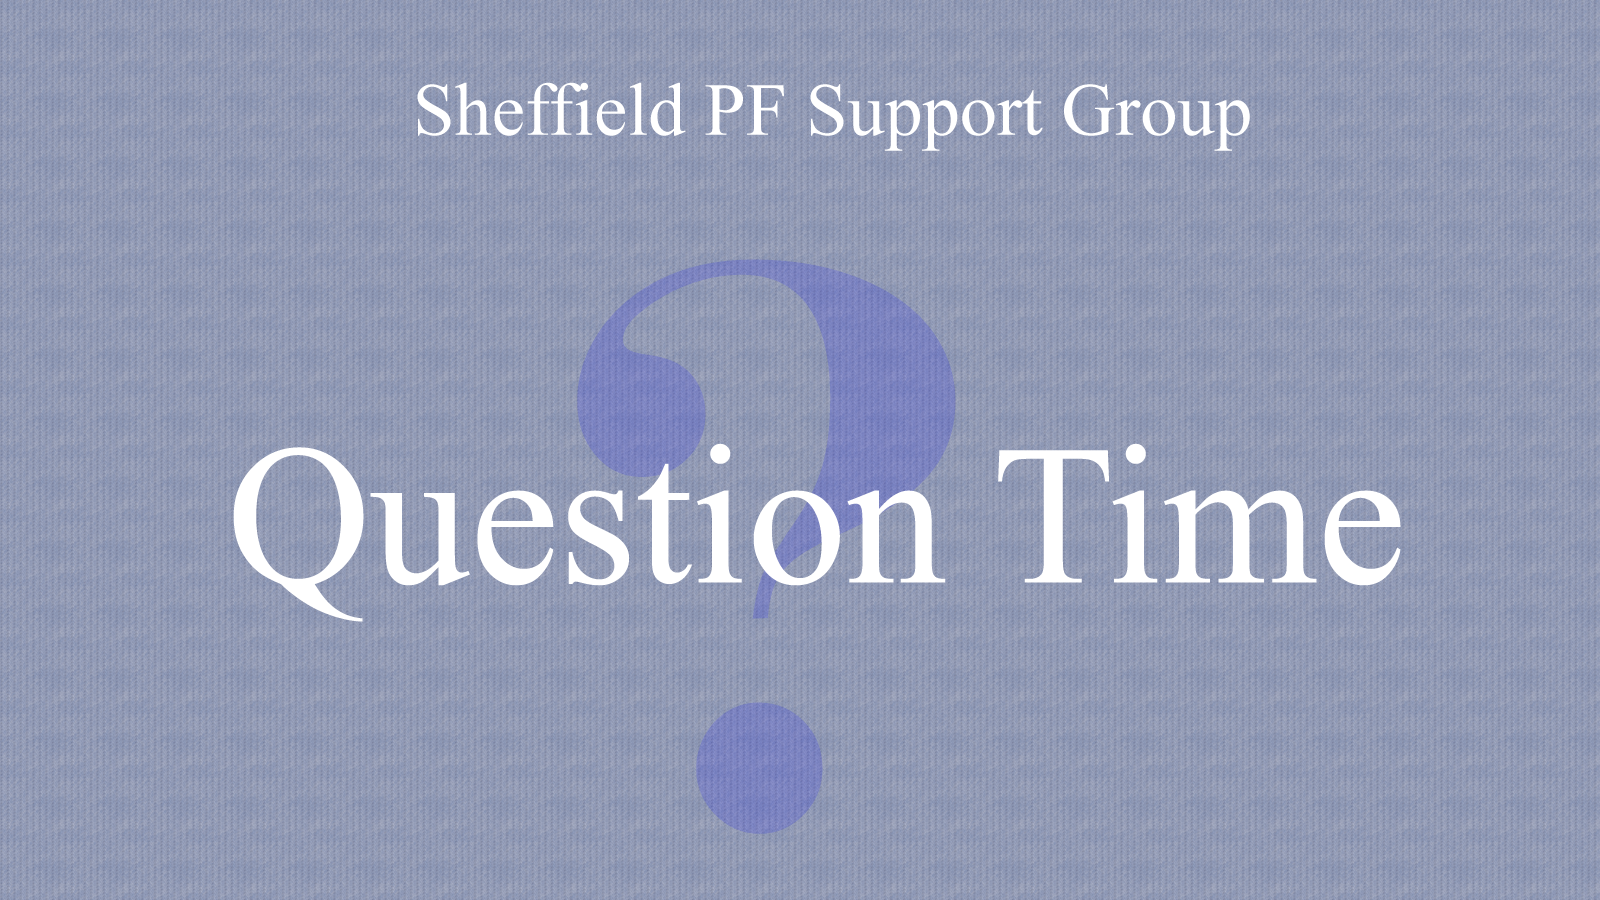 Sheffield PF Support Group Question Time with question mark.